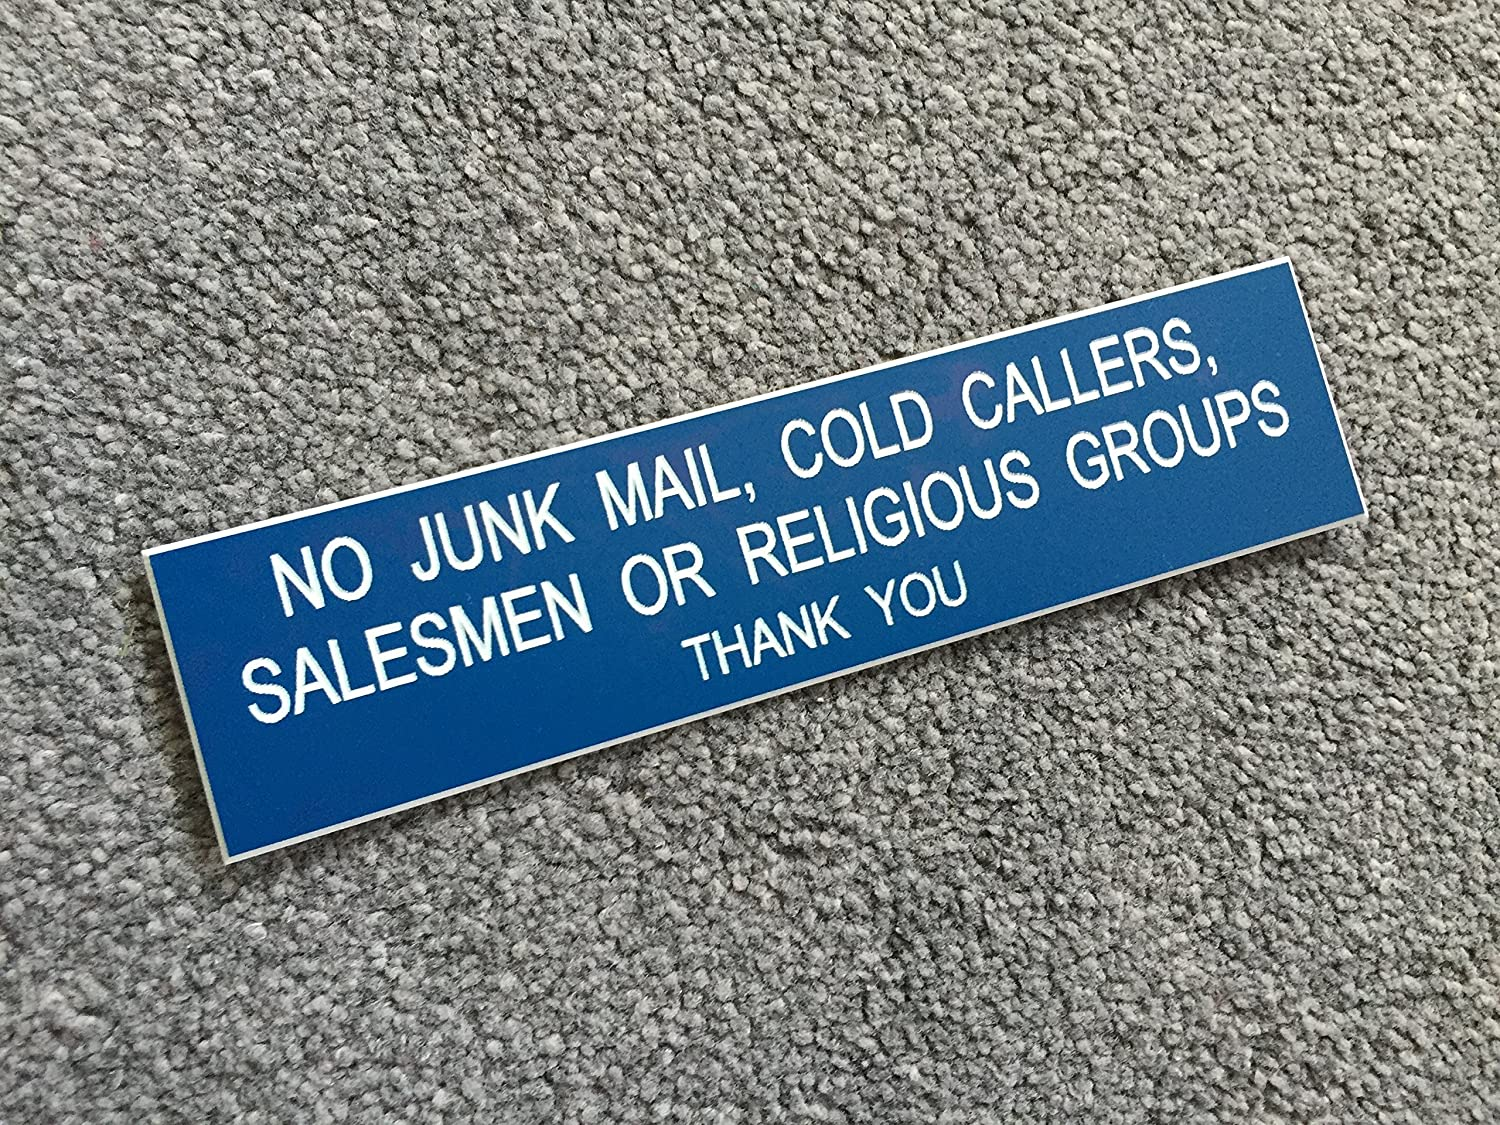 No Junk Mail Engraved Sign Salesmen or Religious Groups Cold Callers